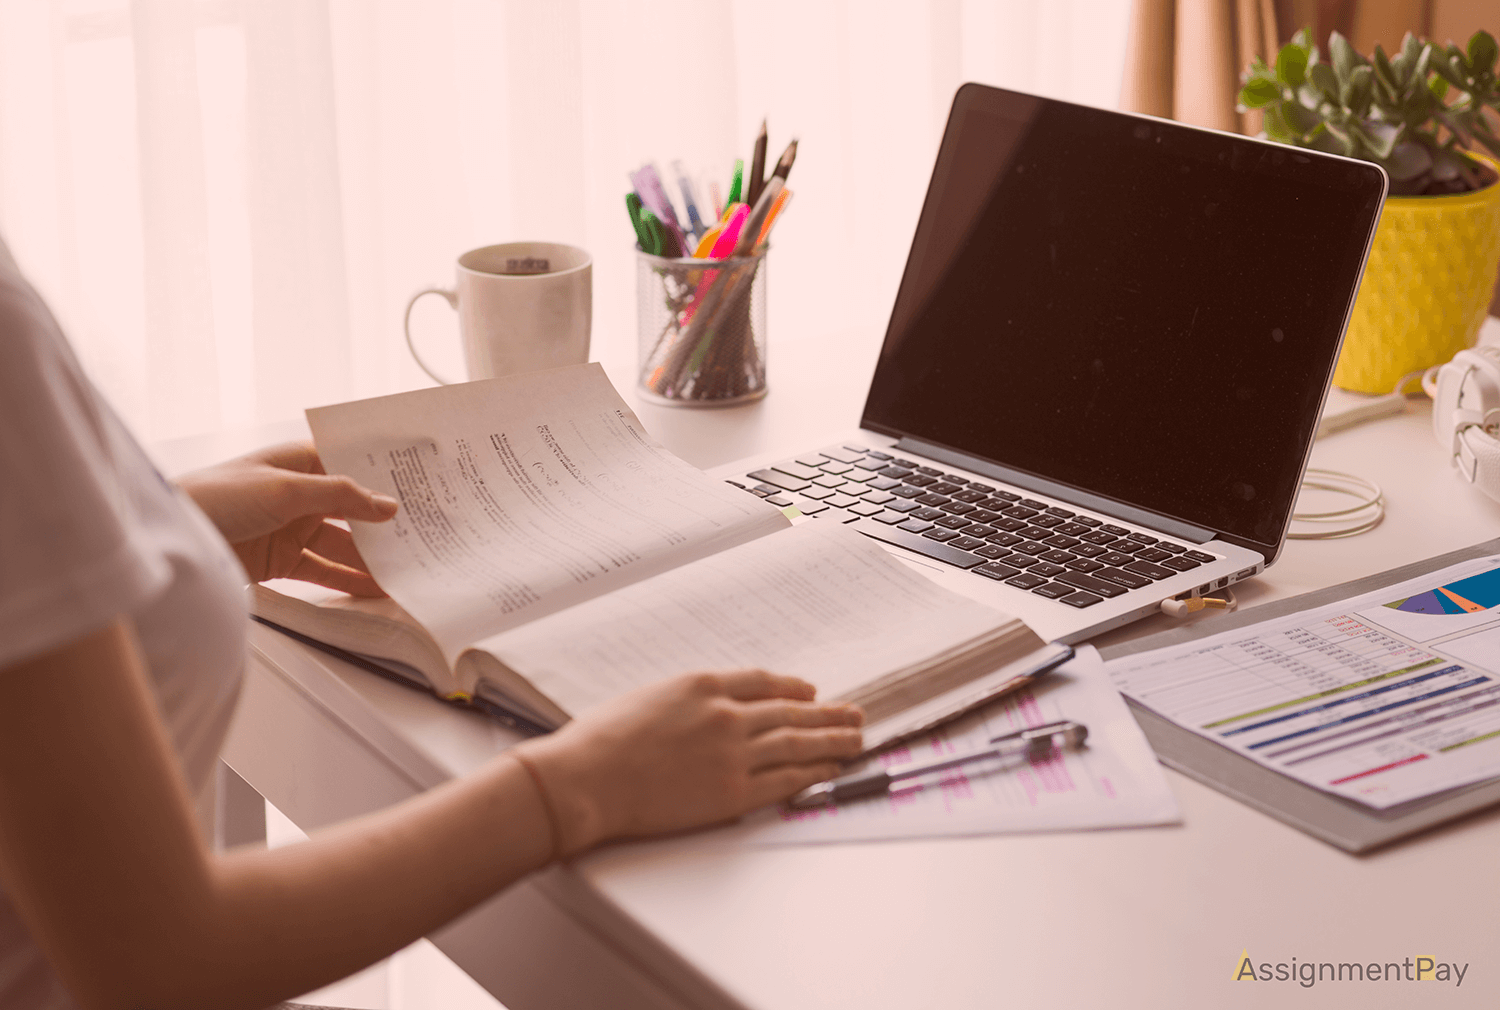 014 Persuasive Research Paper Topics About Awful Music Writing Full